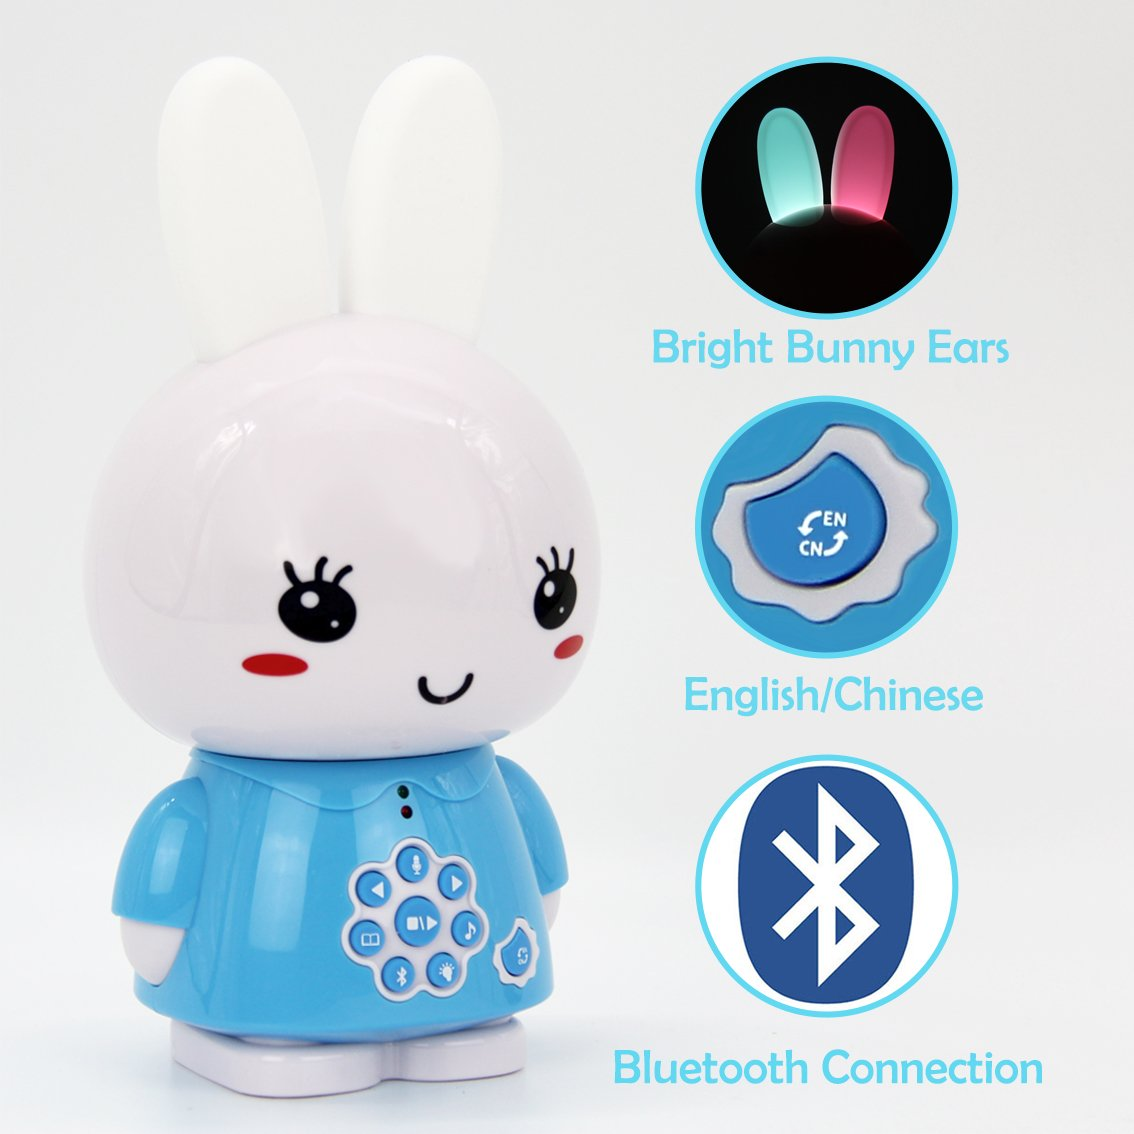 alilo Honey Bunny 8GB MP3 Player Bluetooth with Bilingual Story Song Kids Early Learning Toy Night Light (Blue)